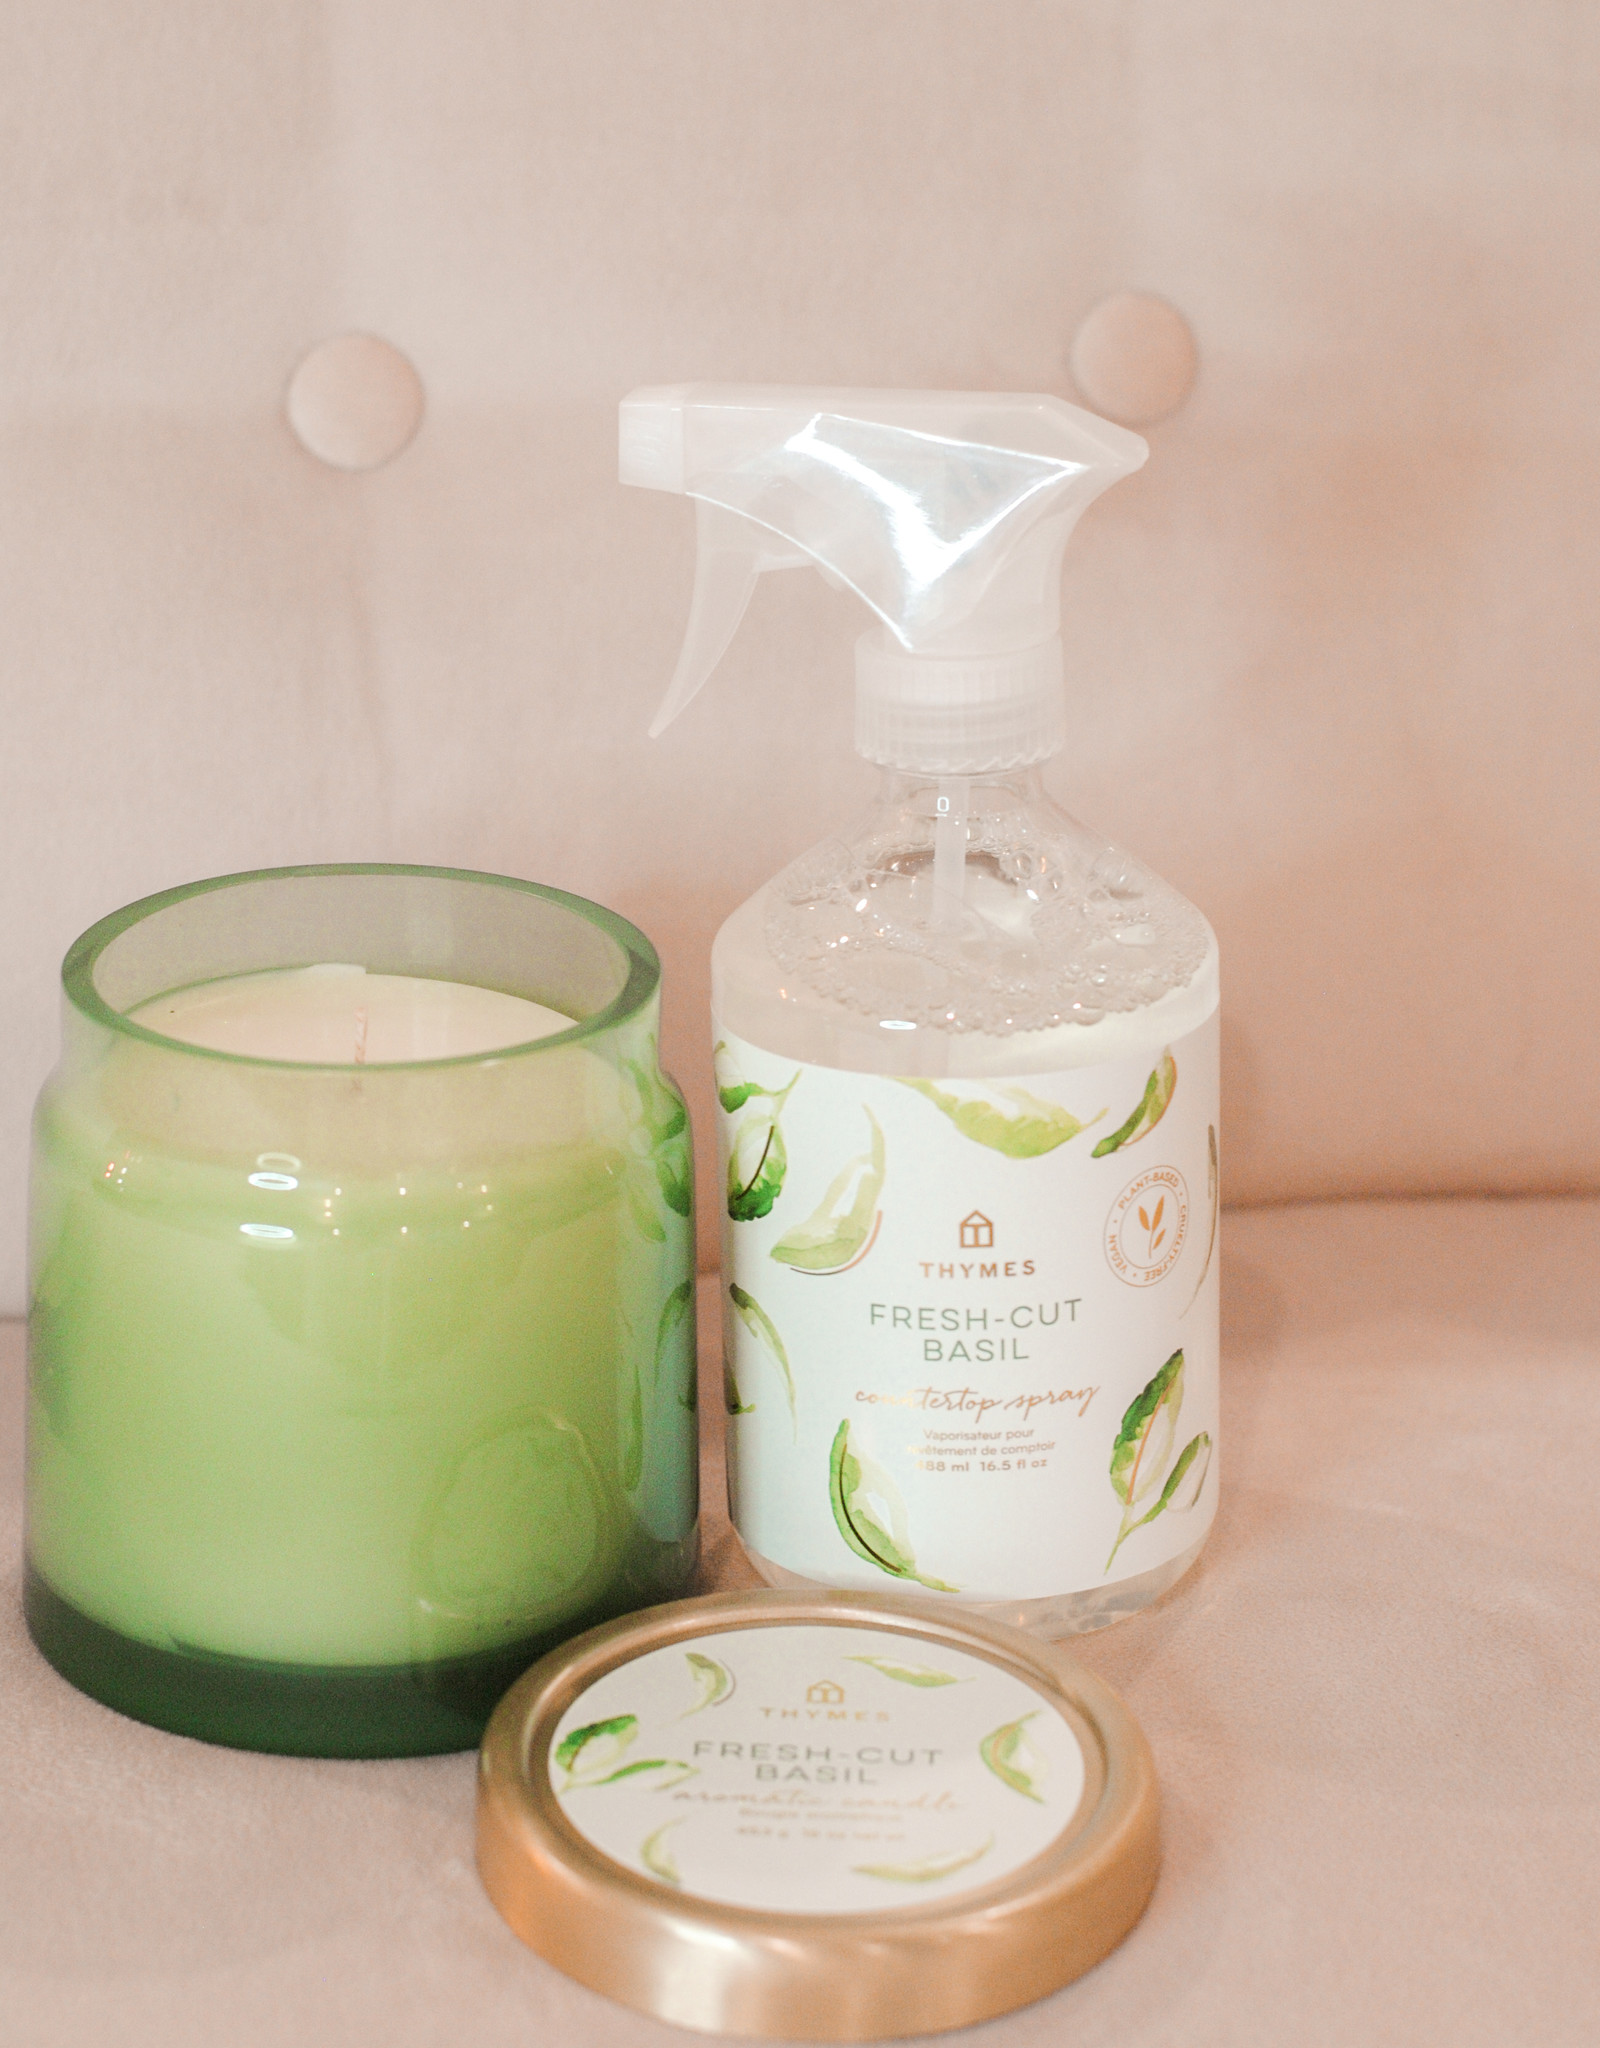 Thymes Basil Candle